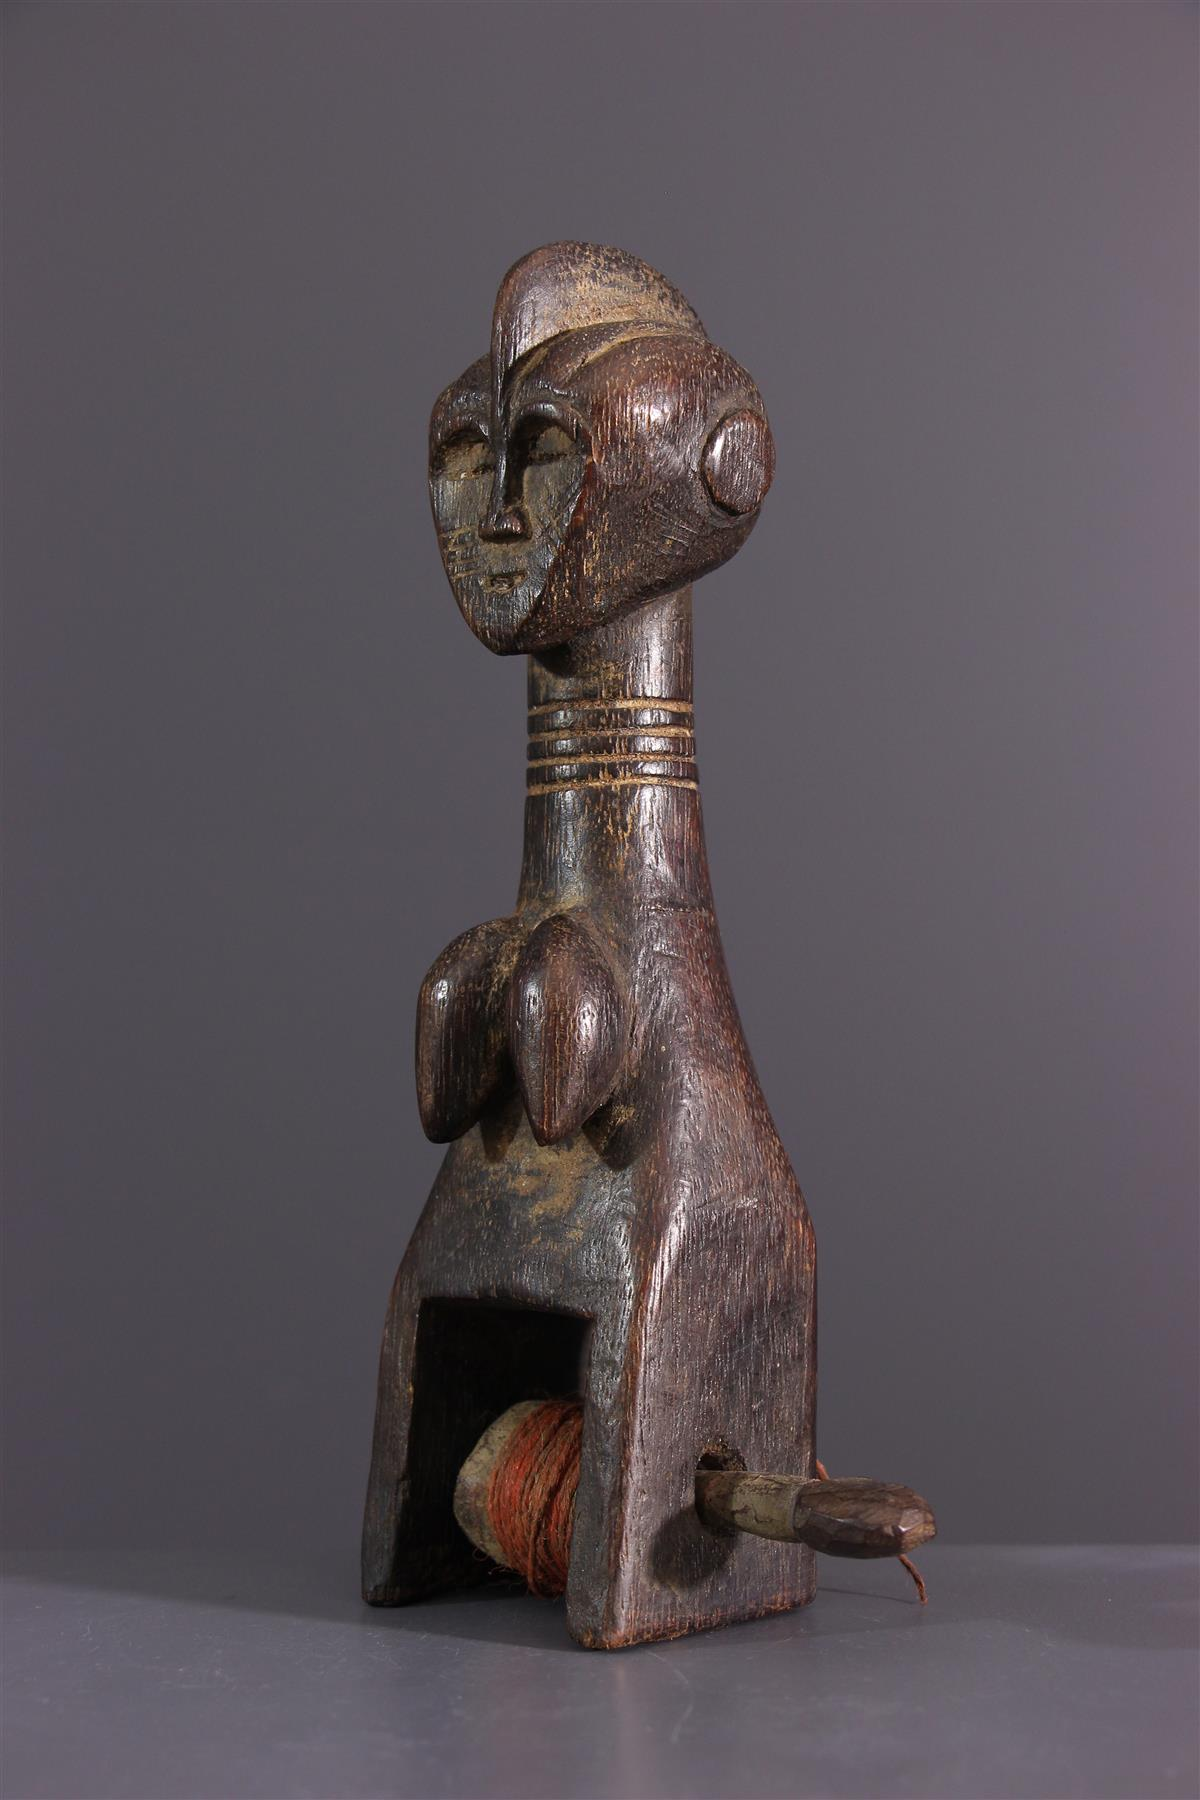 Senufo Pulley - African art